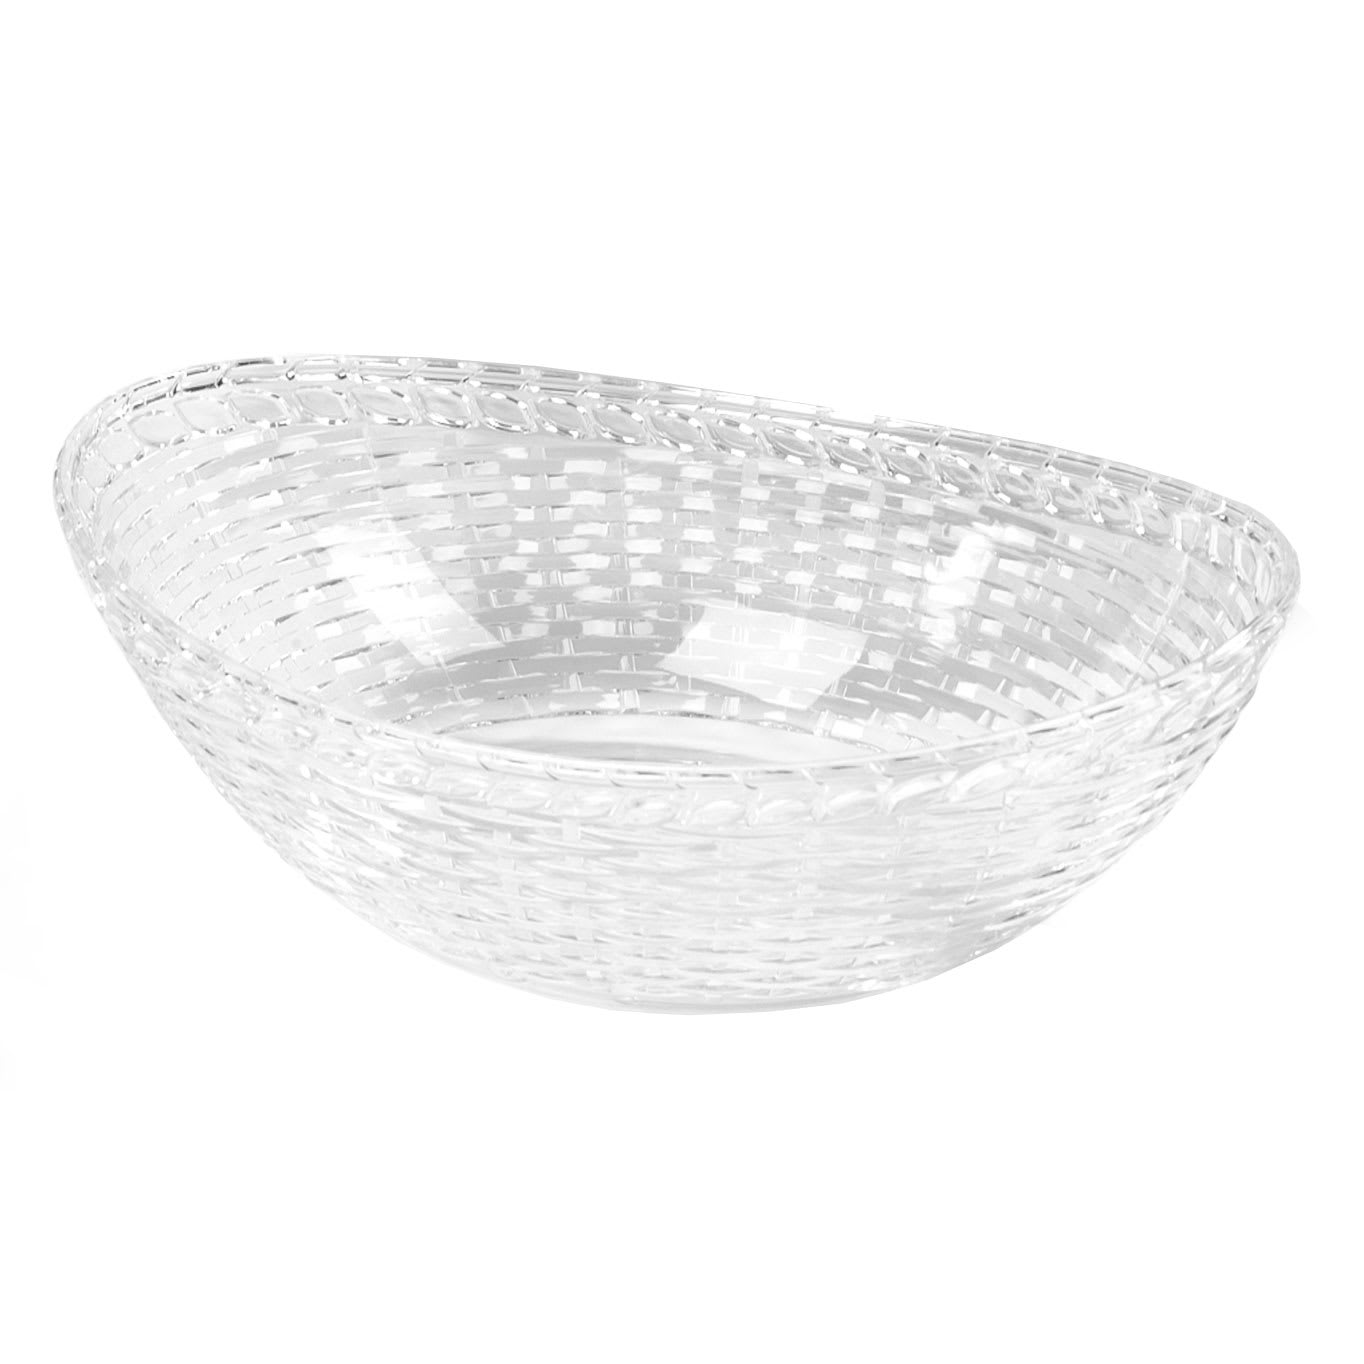 "Carlisle WB96507 Oval Basket - 9.43"" x 6.625"", Polycarbonate, Clear"